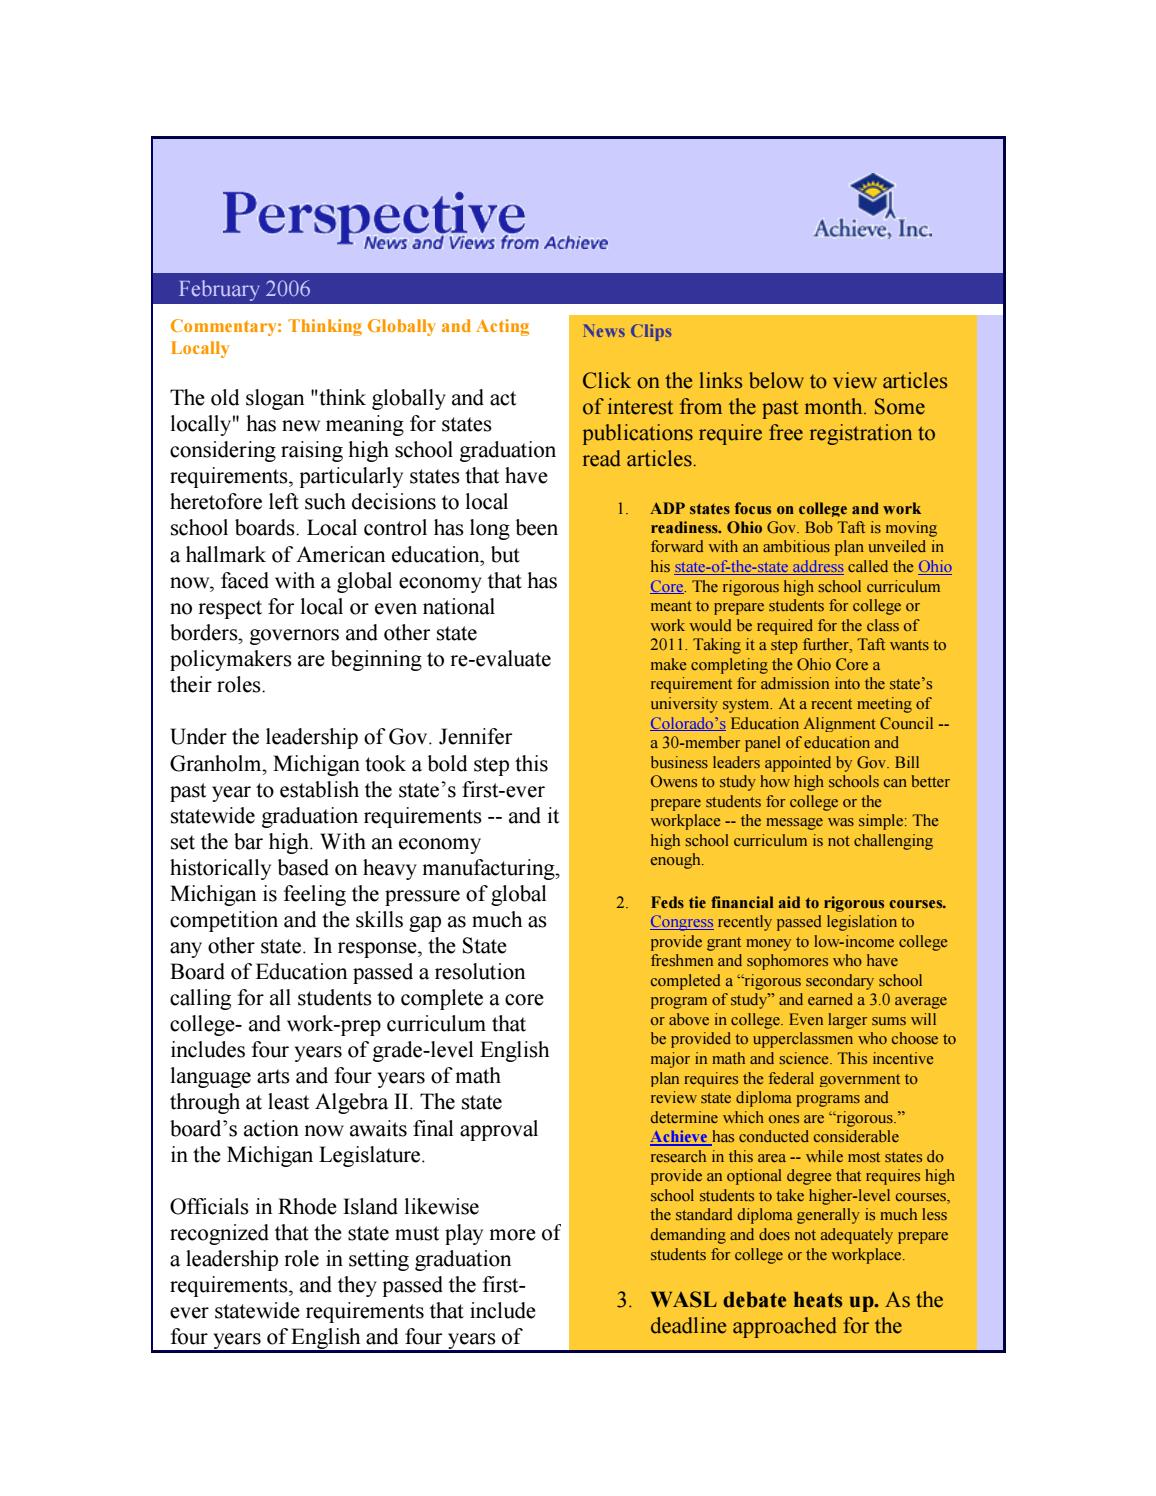 February 2006 Perspective Newsletter by Achieve, Inc  - issuu